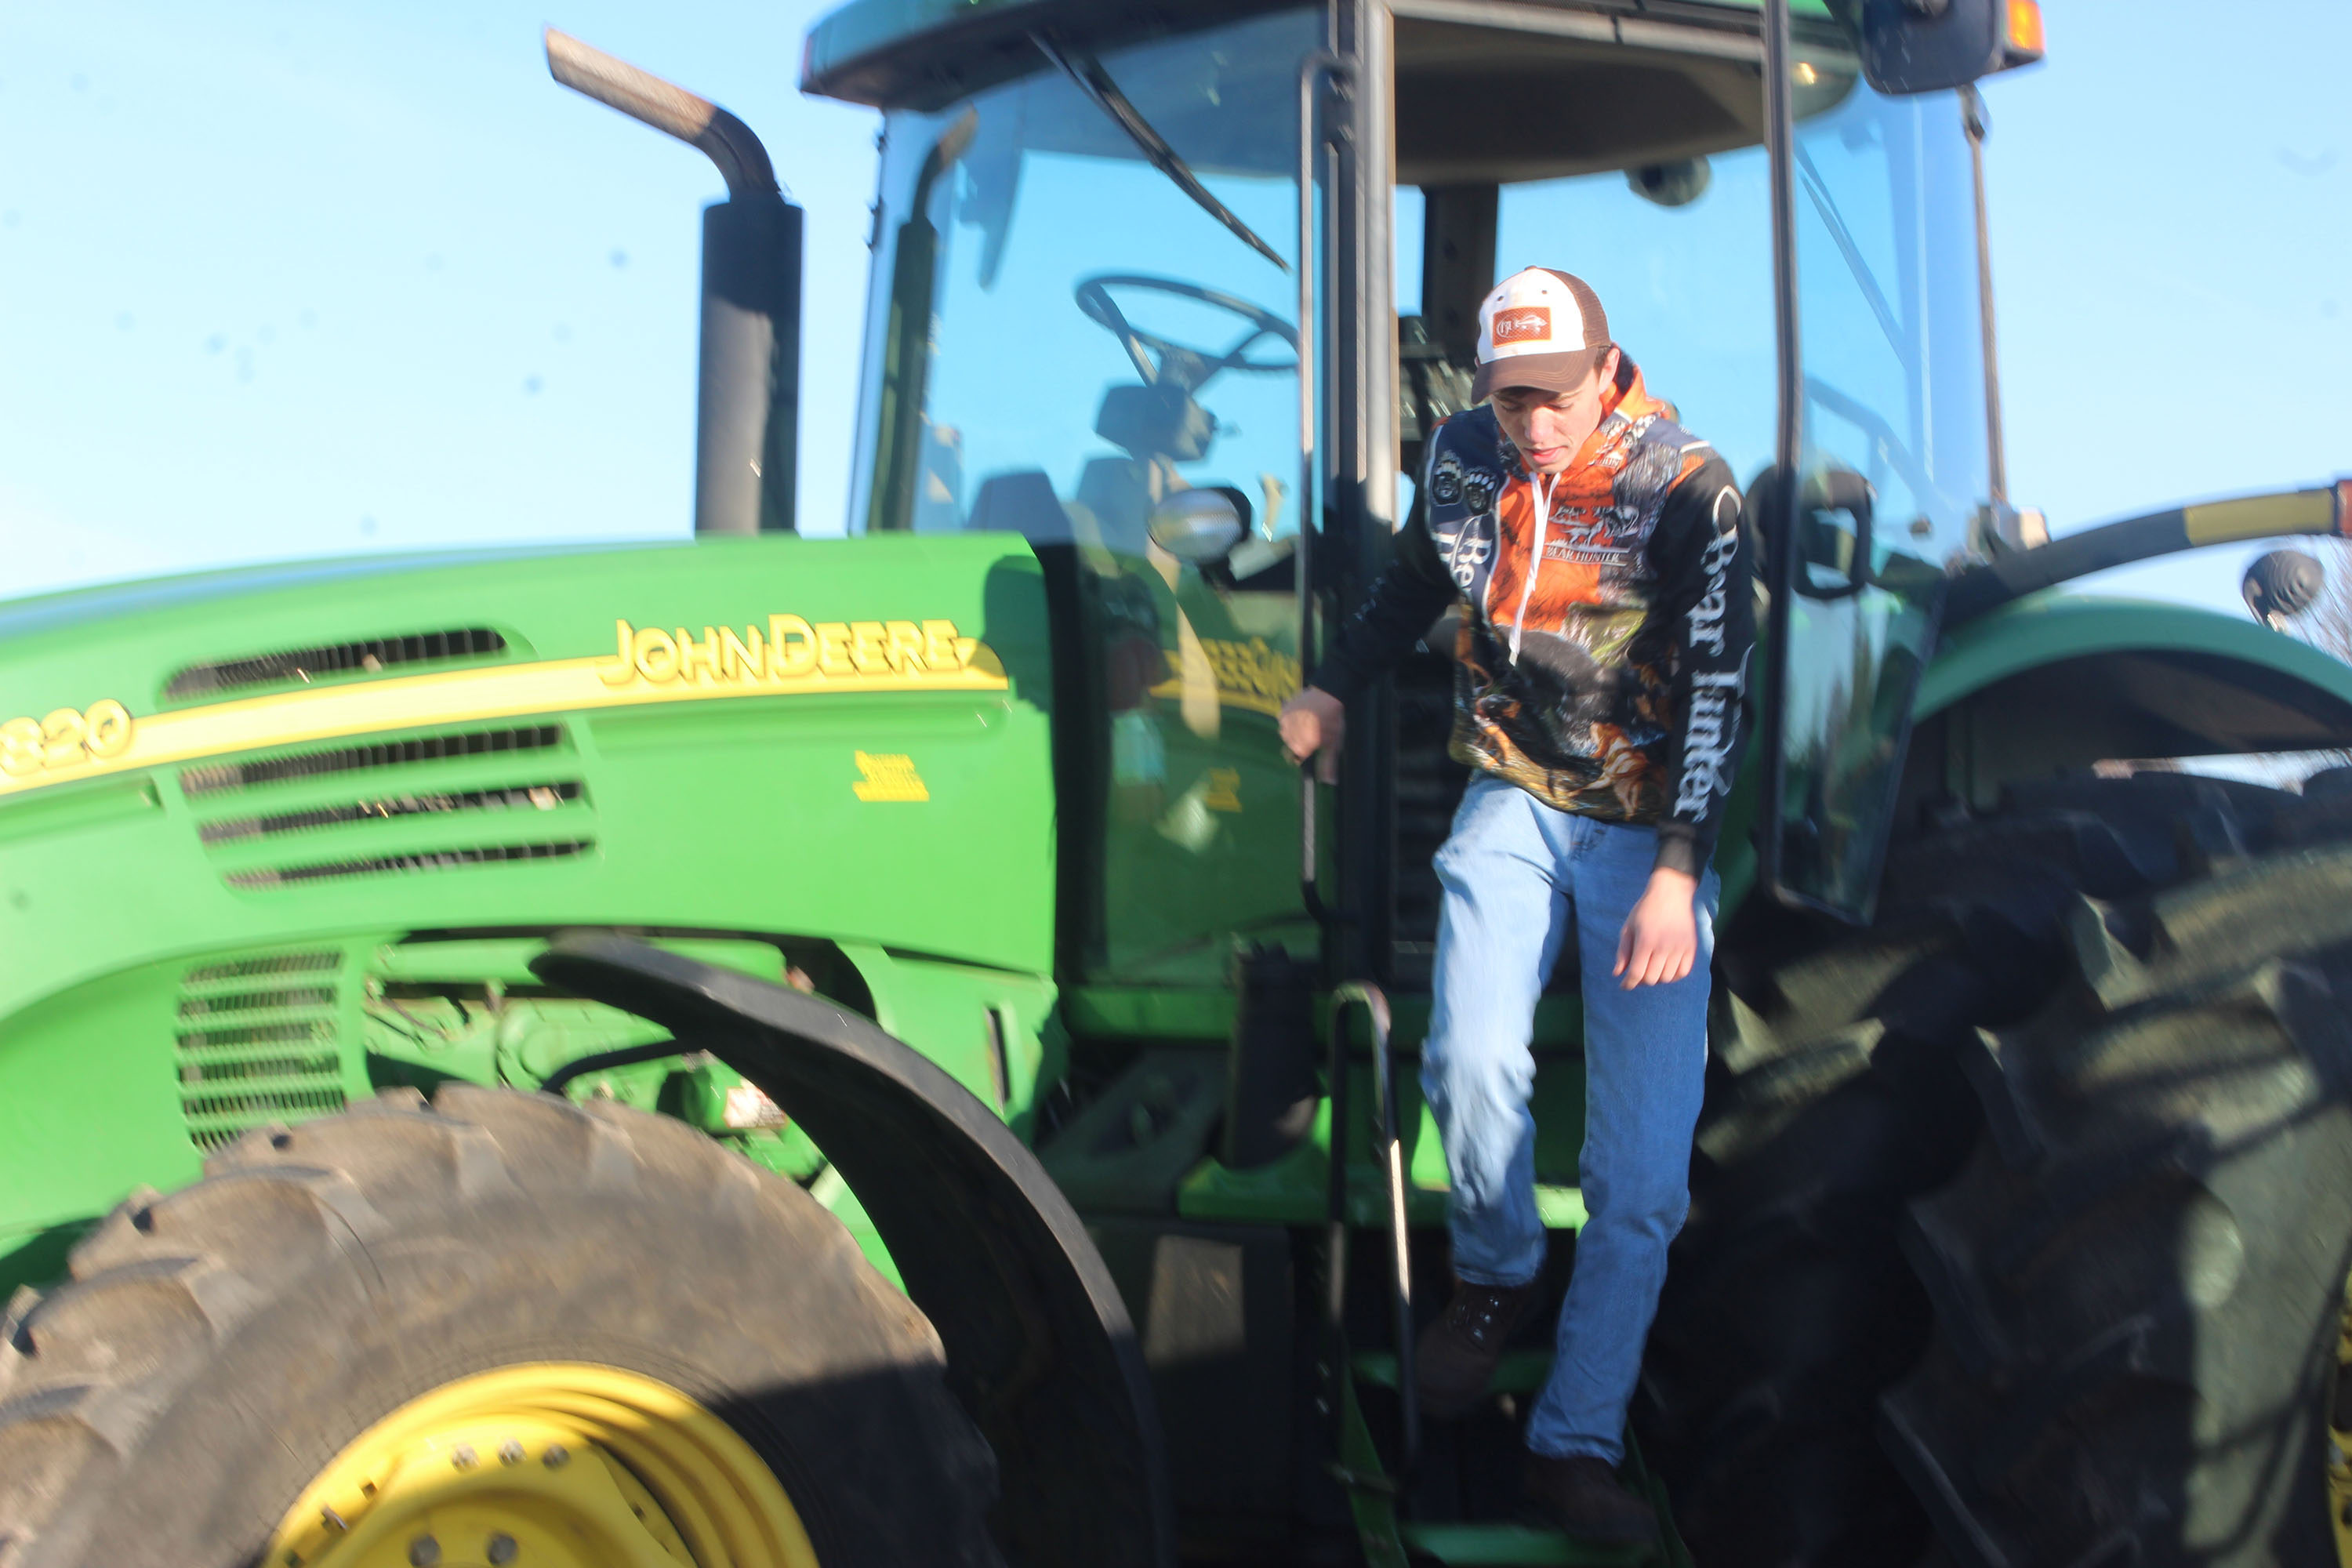 Shawano Community High School senior John Rhode climbs out of his family's John Deere tractor April 17 in the high school's parking lot. Rhode was one of almost a dozen members of the Shawano FFA who drove their tractors to school.<br />(Lee Pulaski | NEW Media)